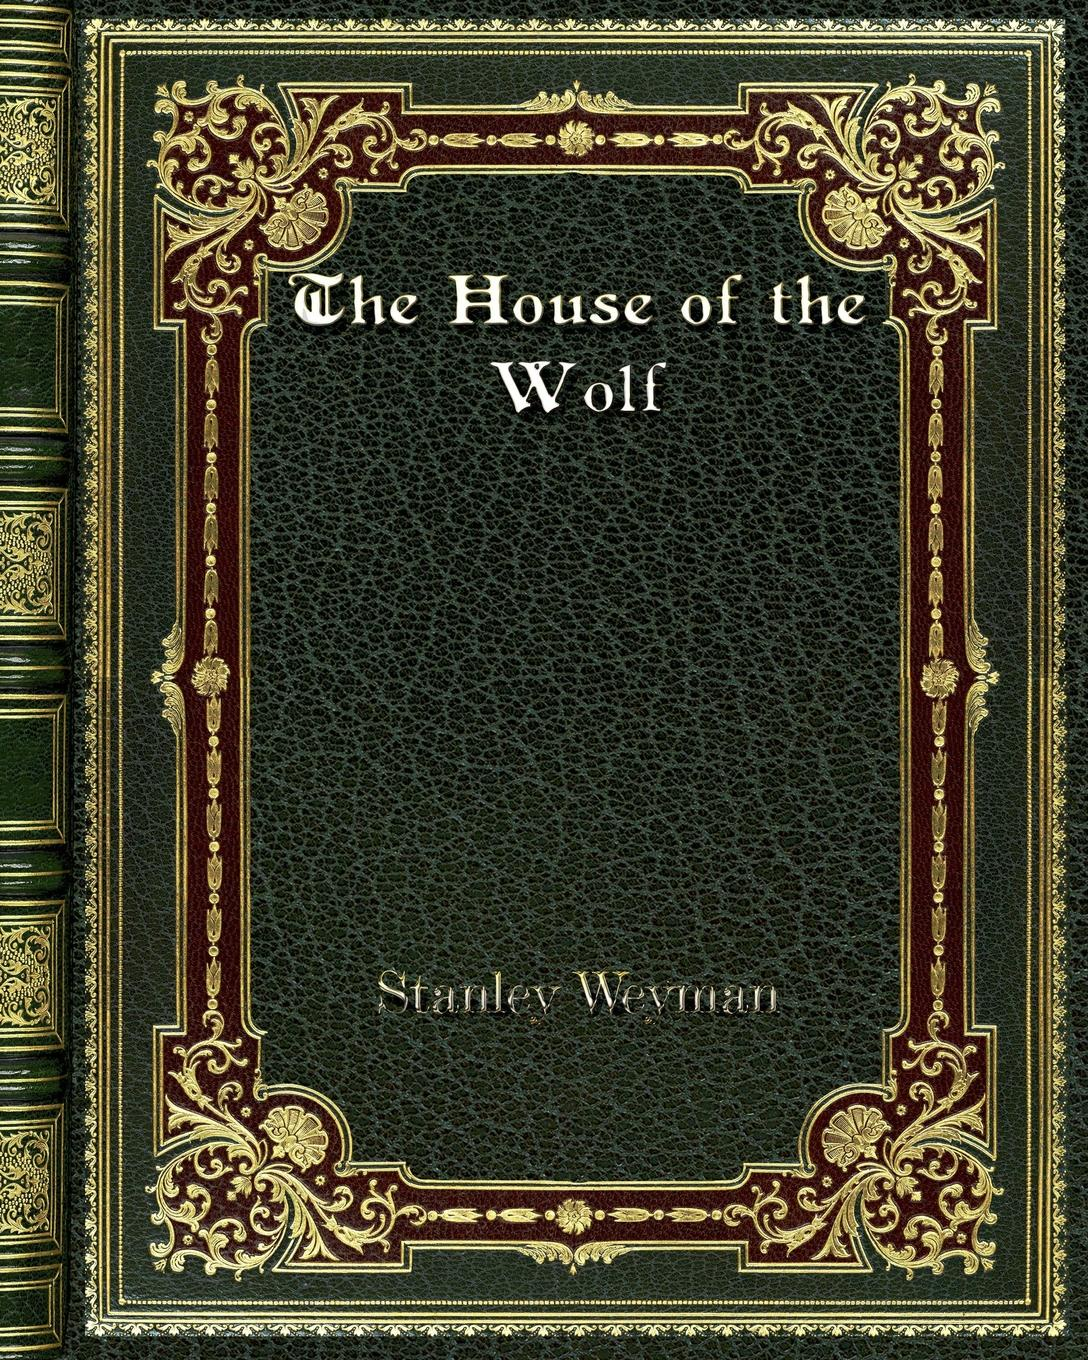 Stanley Weyman The House of the Wolf